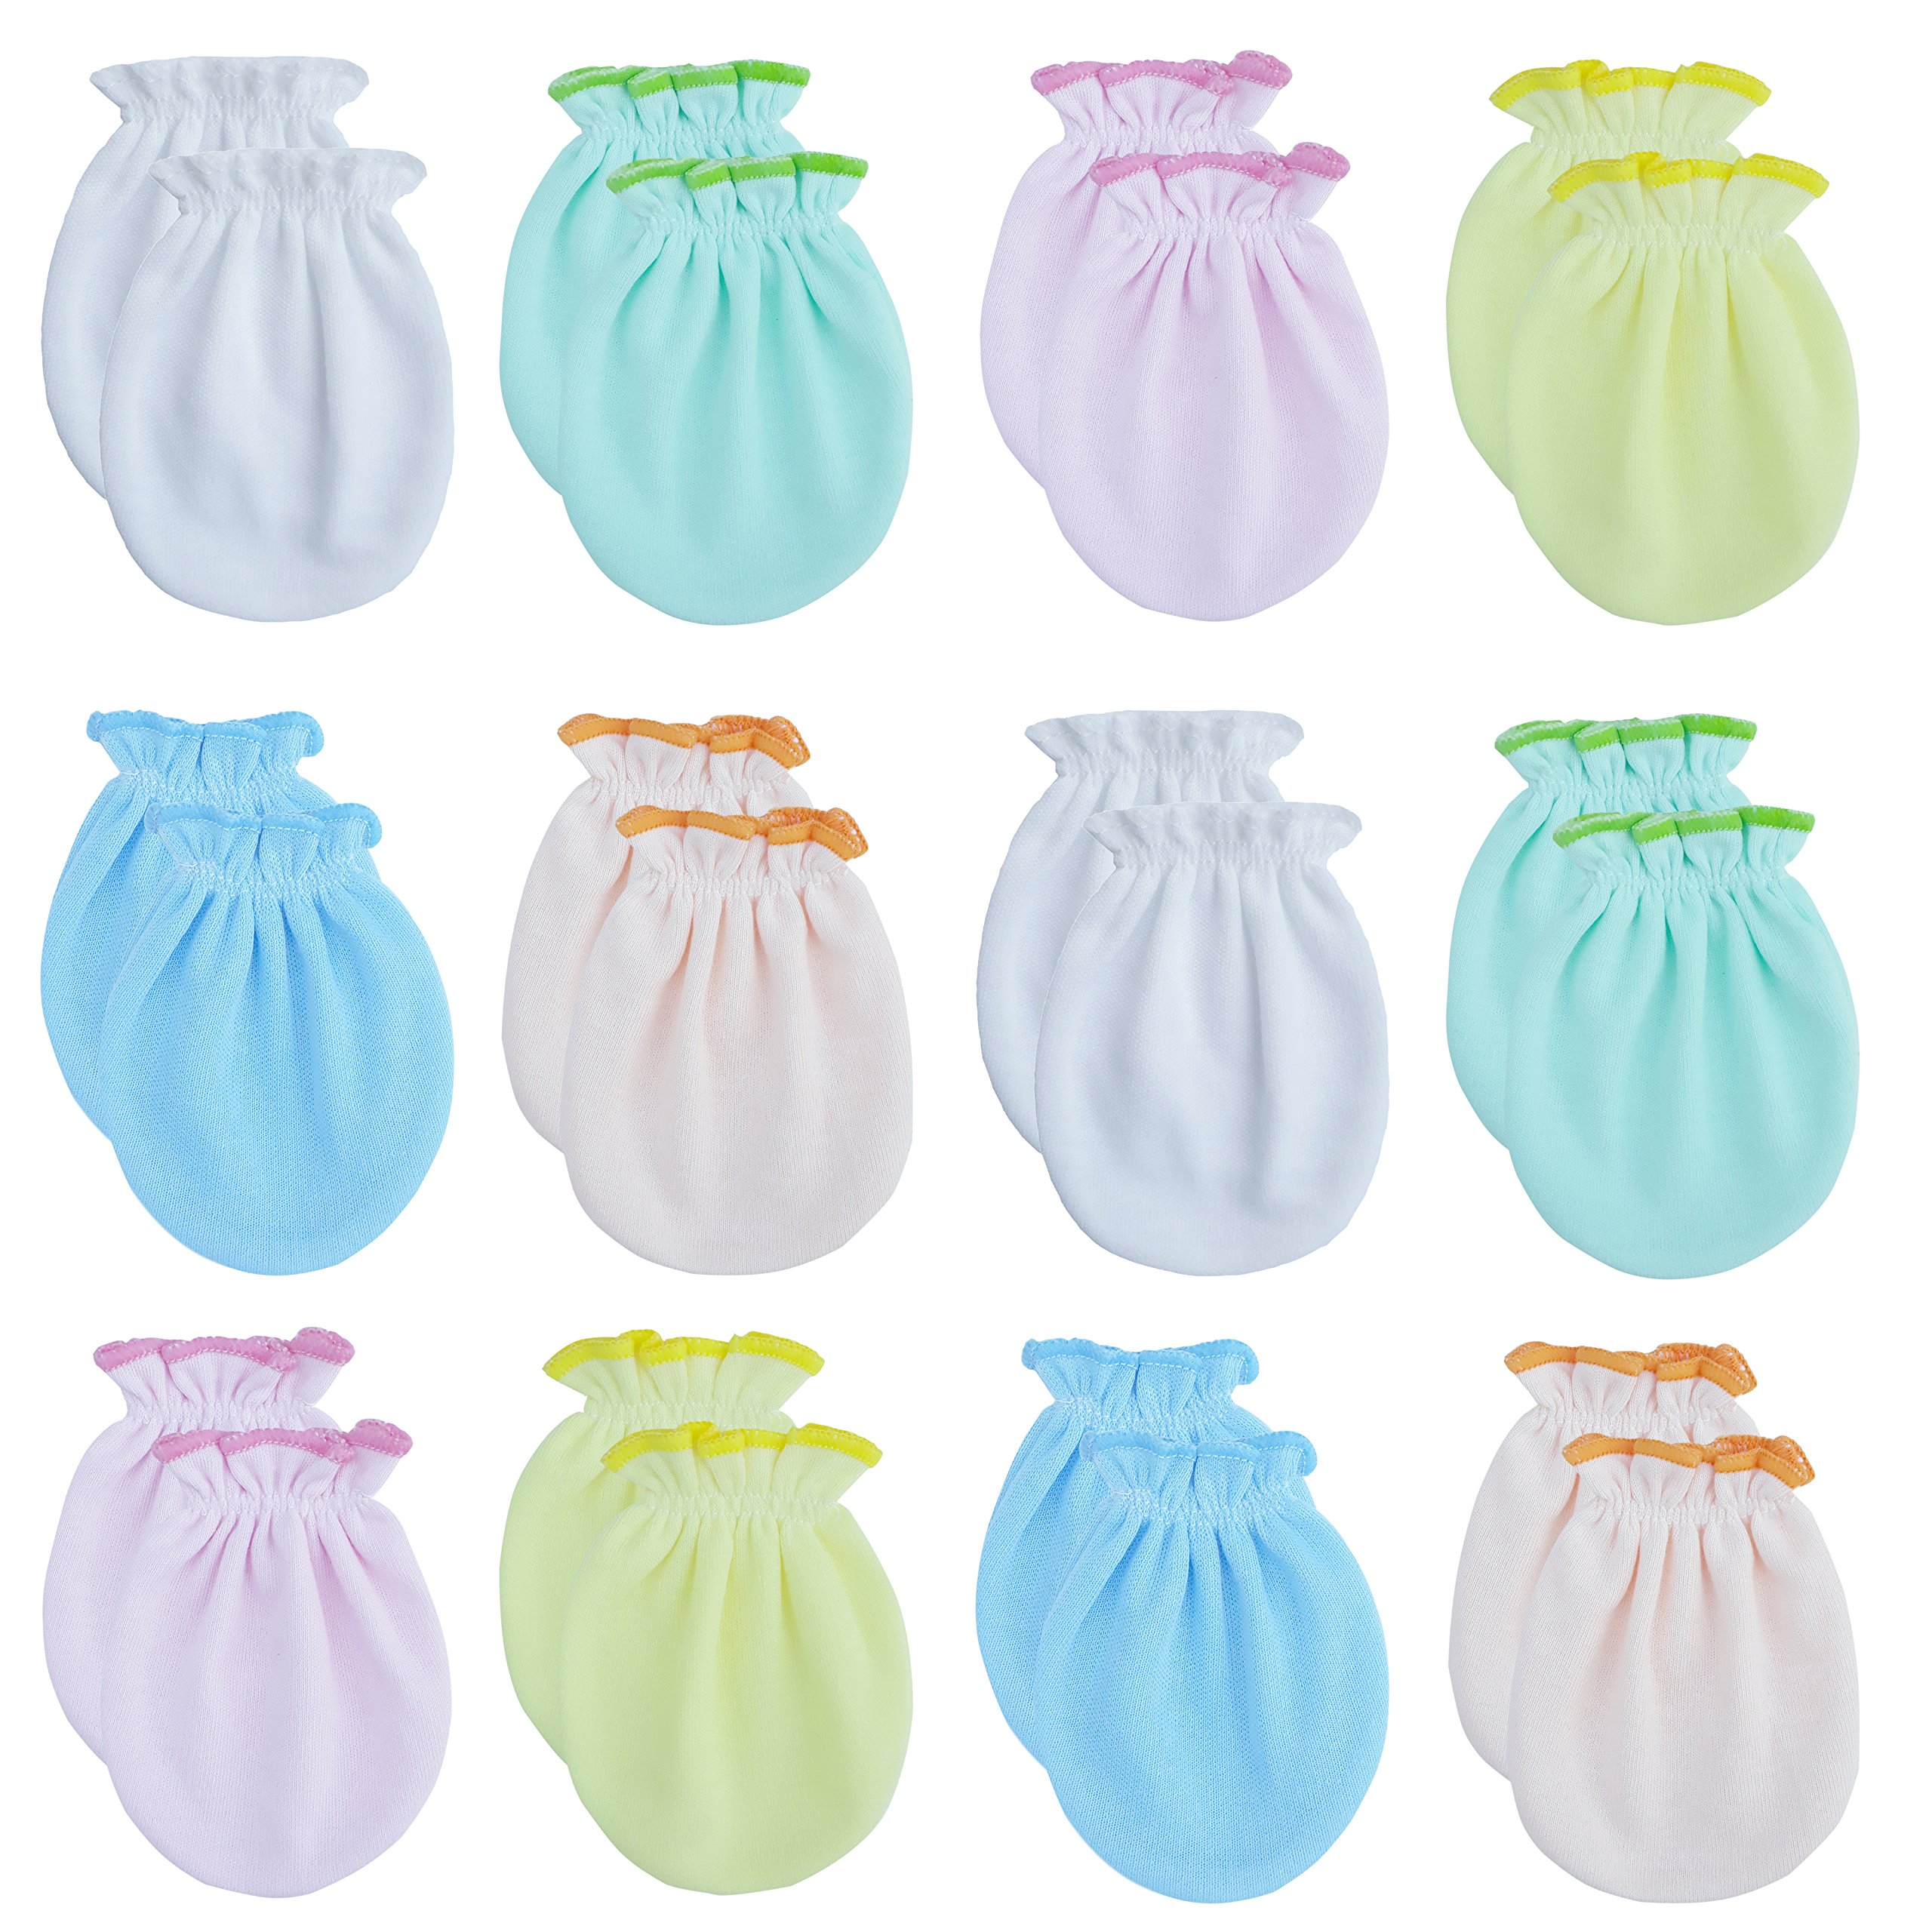 100/% Cotton Solid Colors Liwely 6 Pairs Unisex-Baby No Scratch Mittens